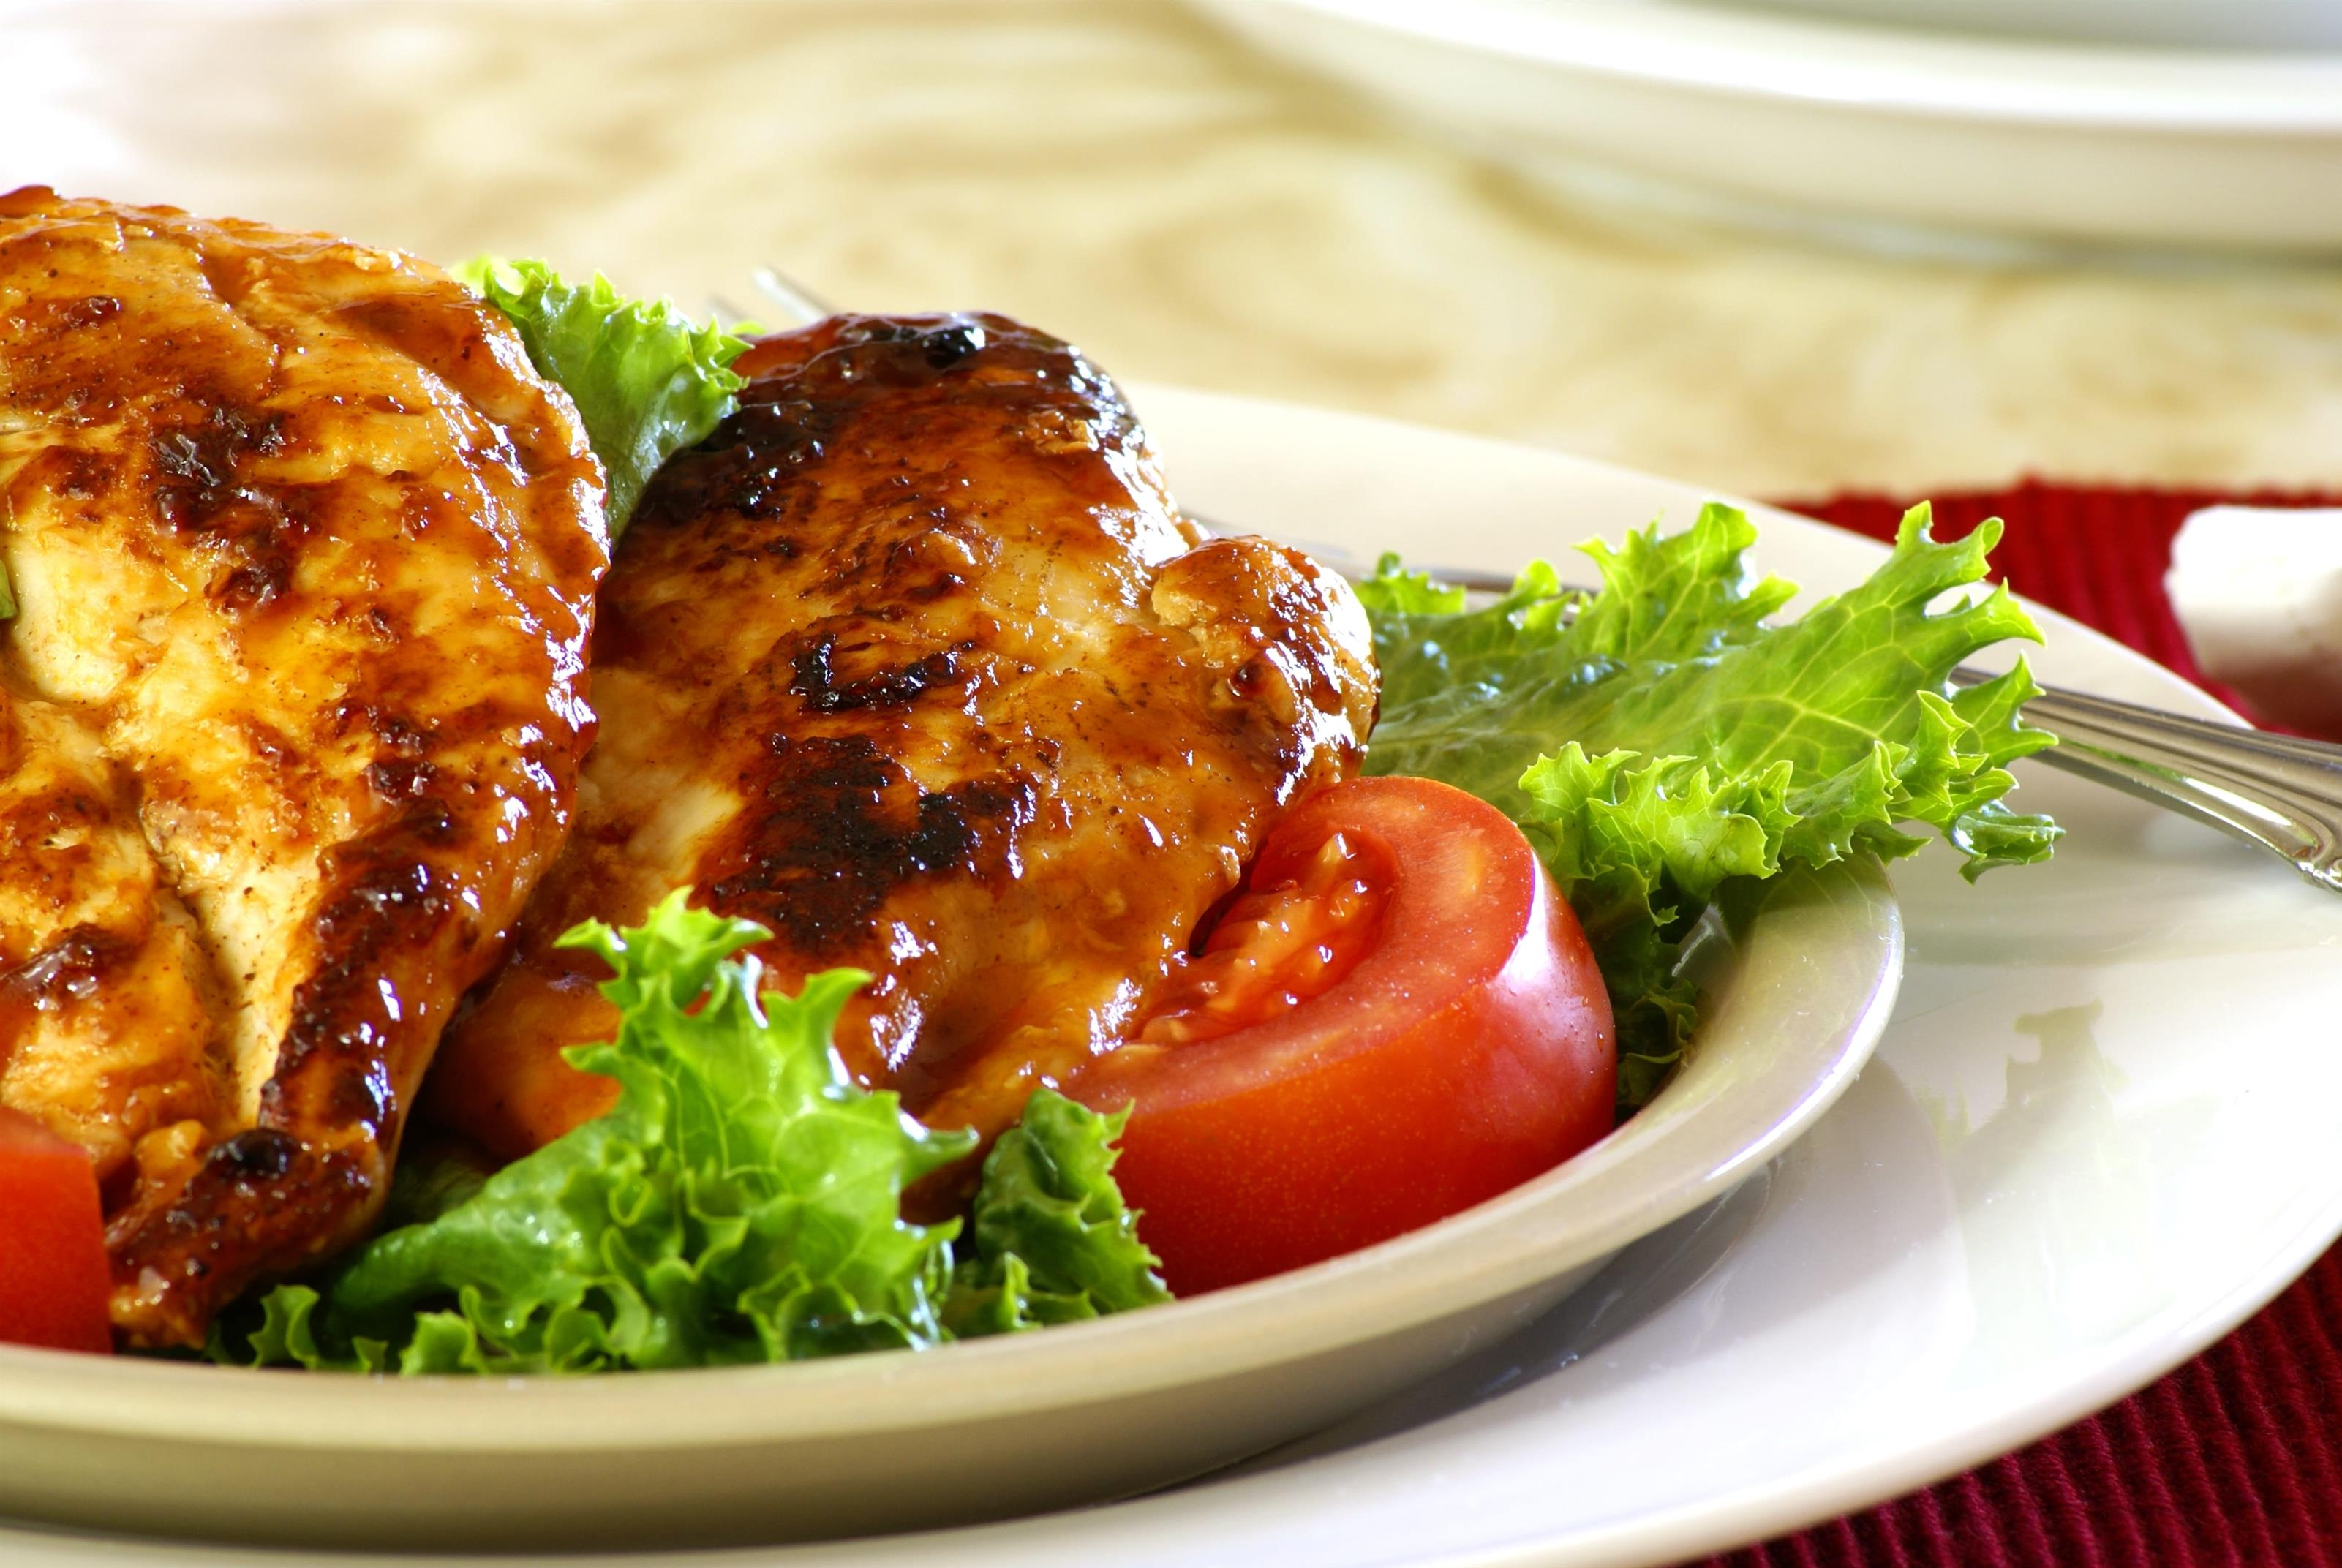 Two pieces of chicken breast with over lettuce and tomato on white dish